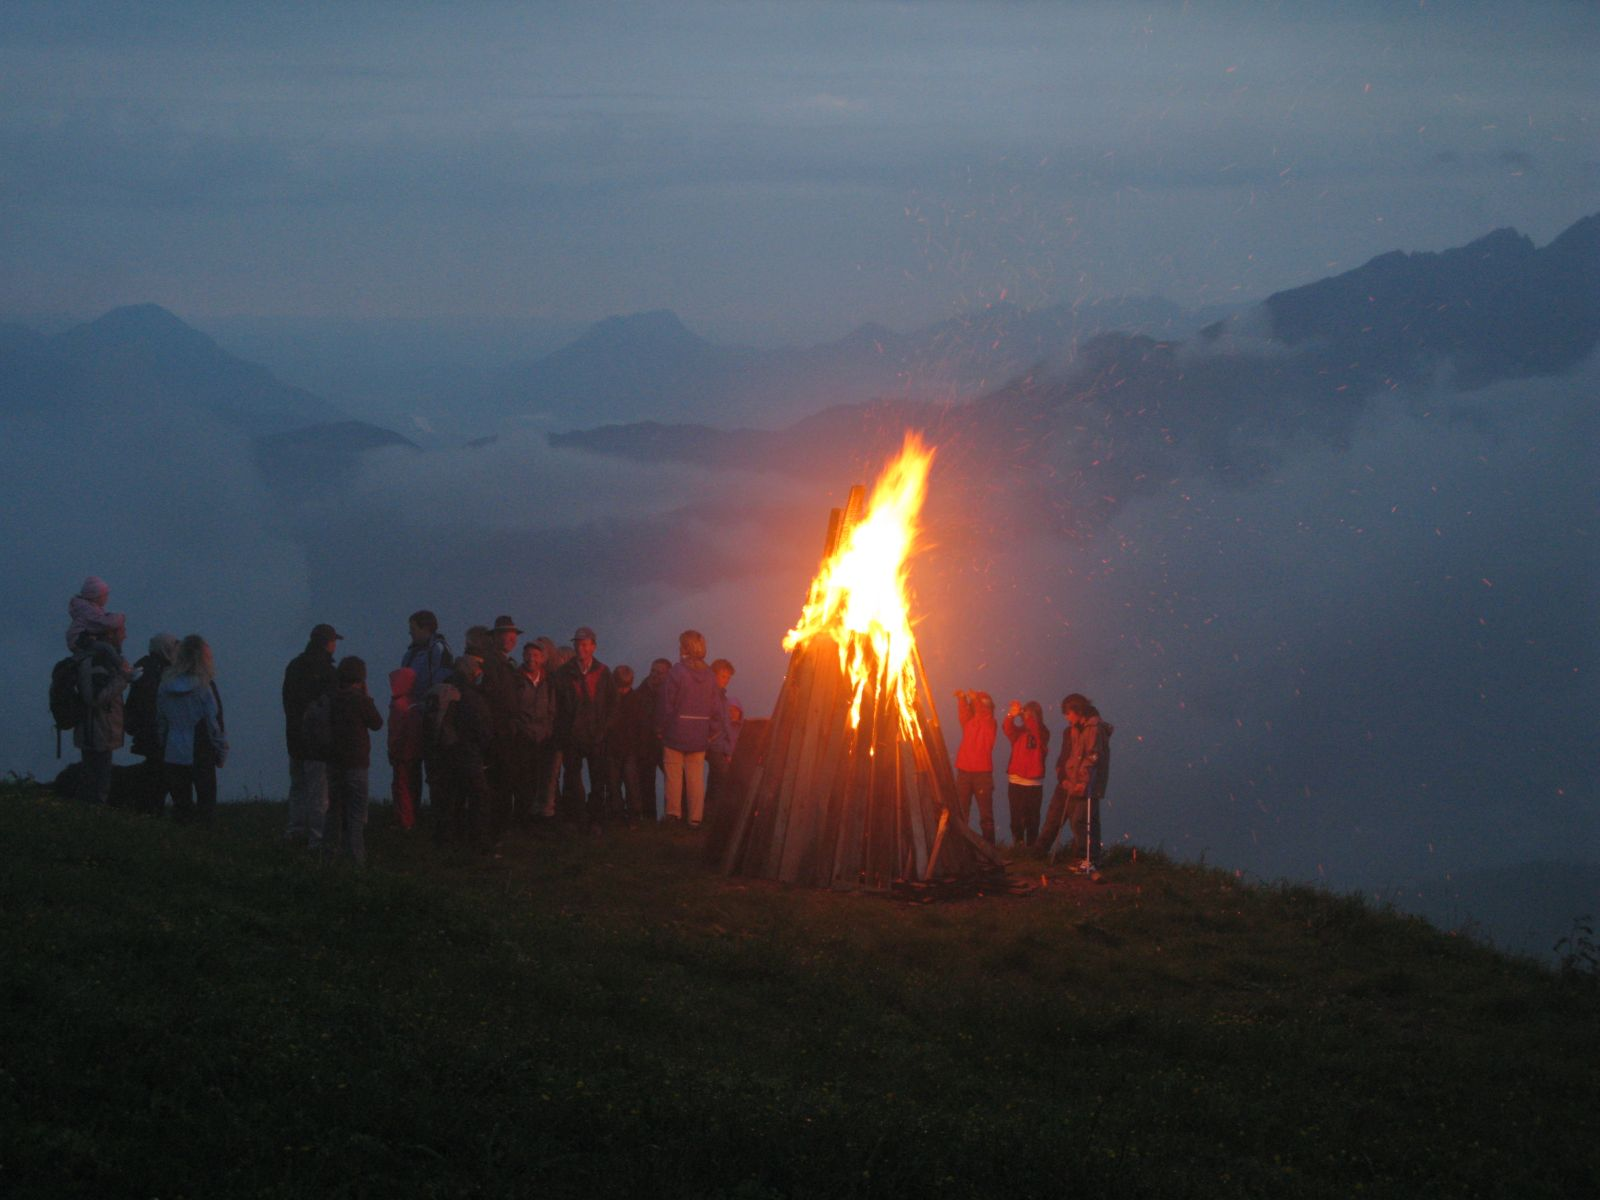 bonfire on a mountain in Austria during summer solstice